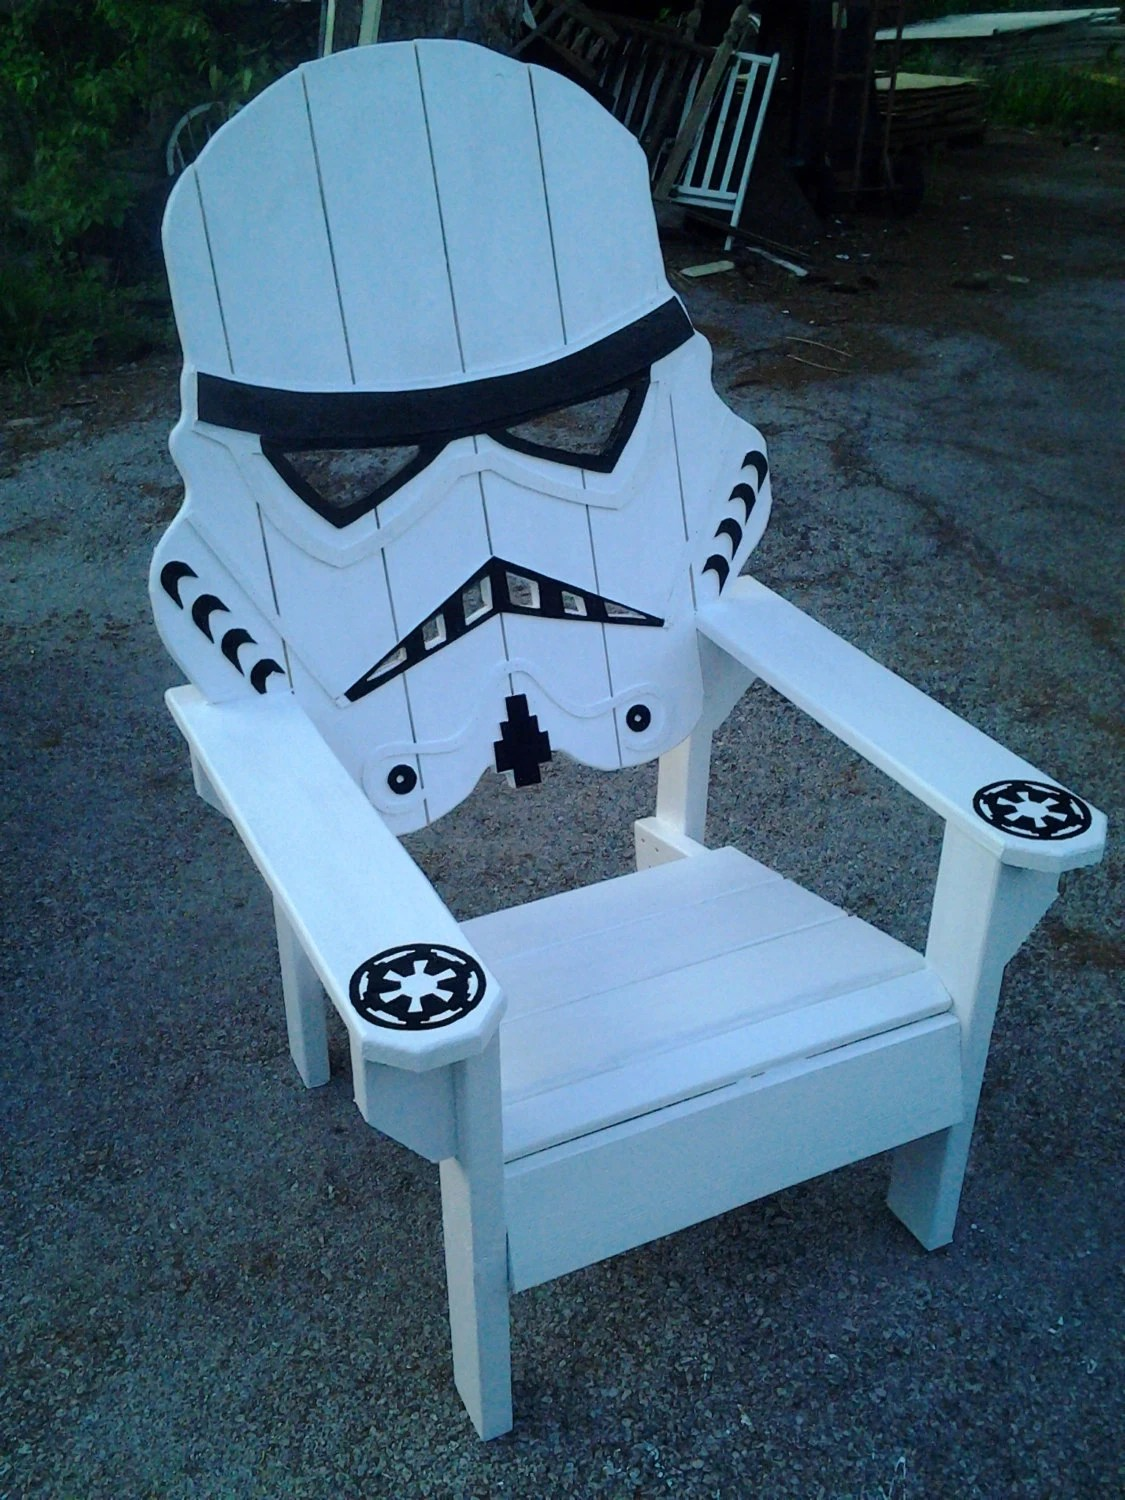 Star Wars Chairs Star Wars Storm Trooper Chairadirondack Chair Yard